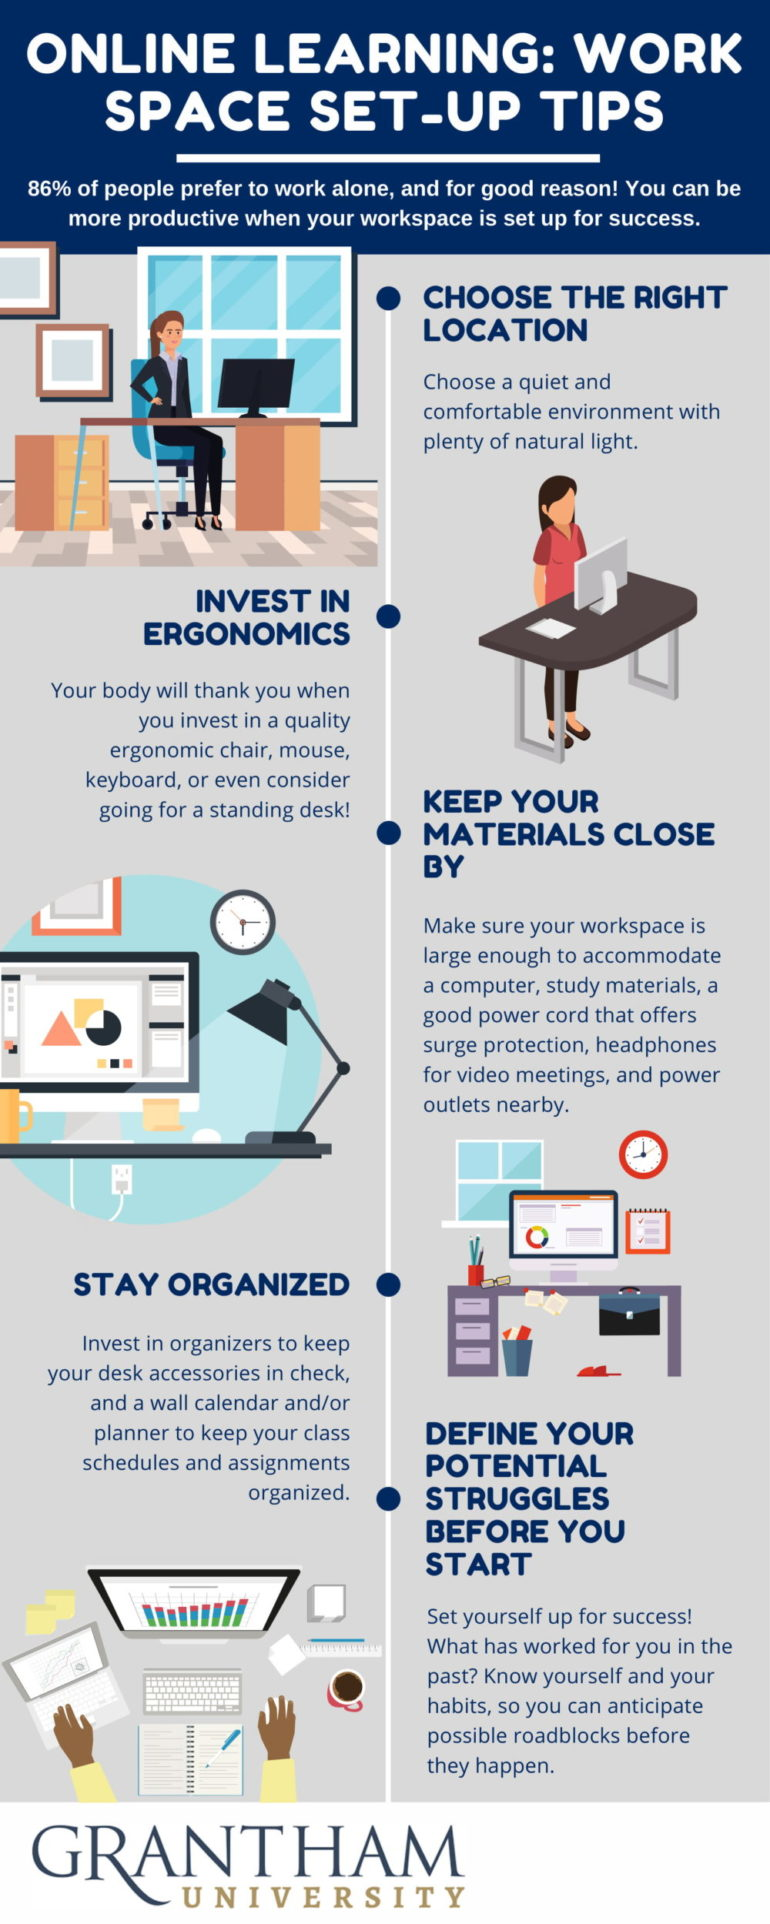 Online Learning: Work Space Set-Up Tips [Infographic]